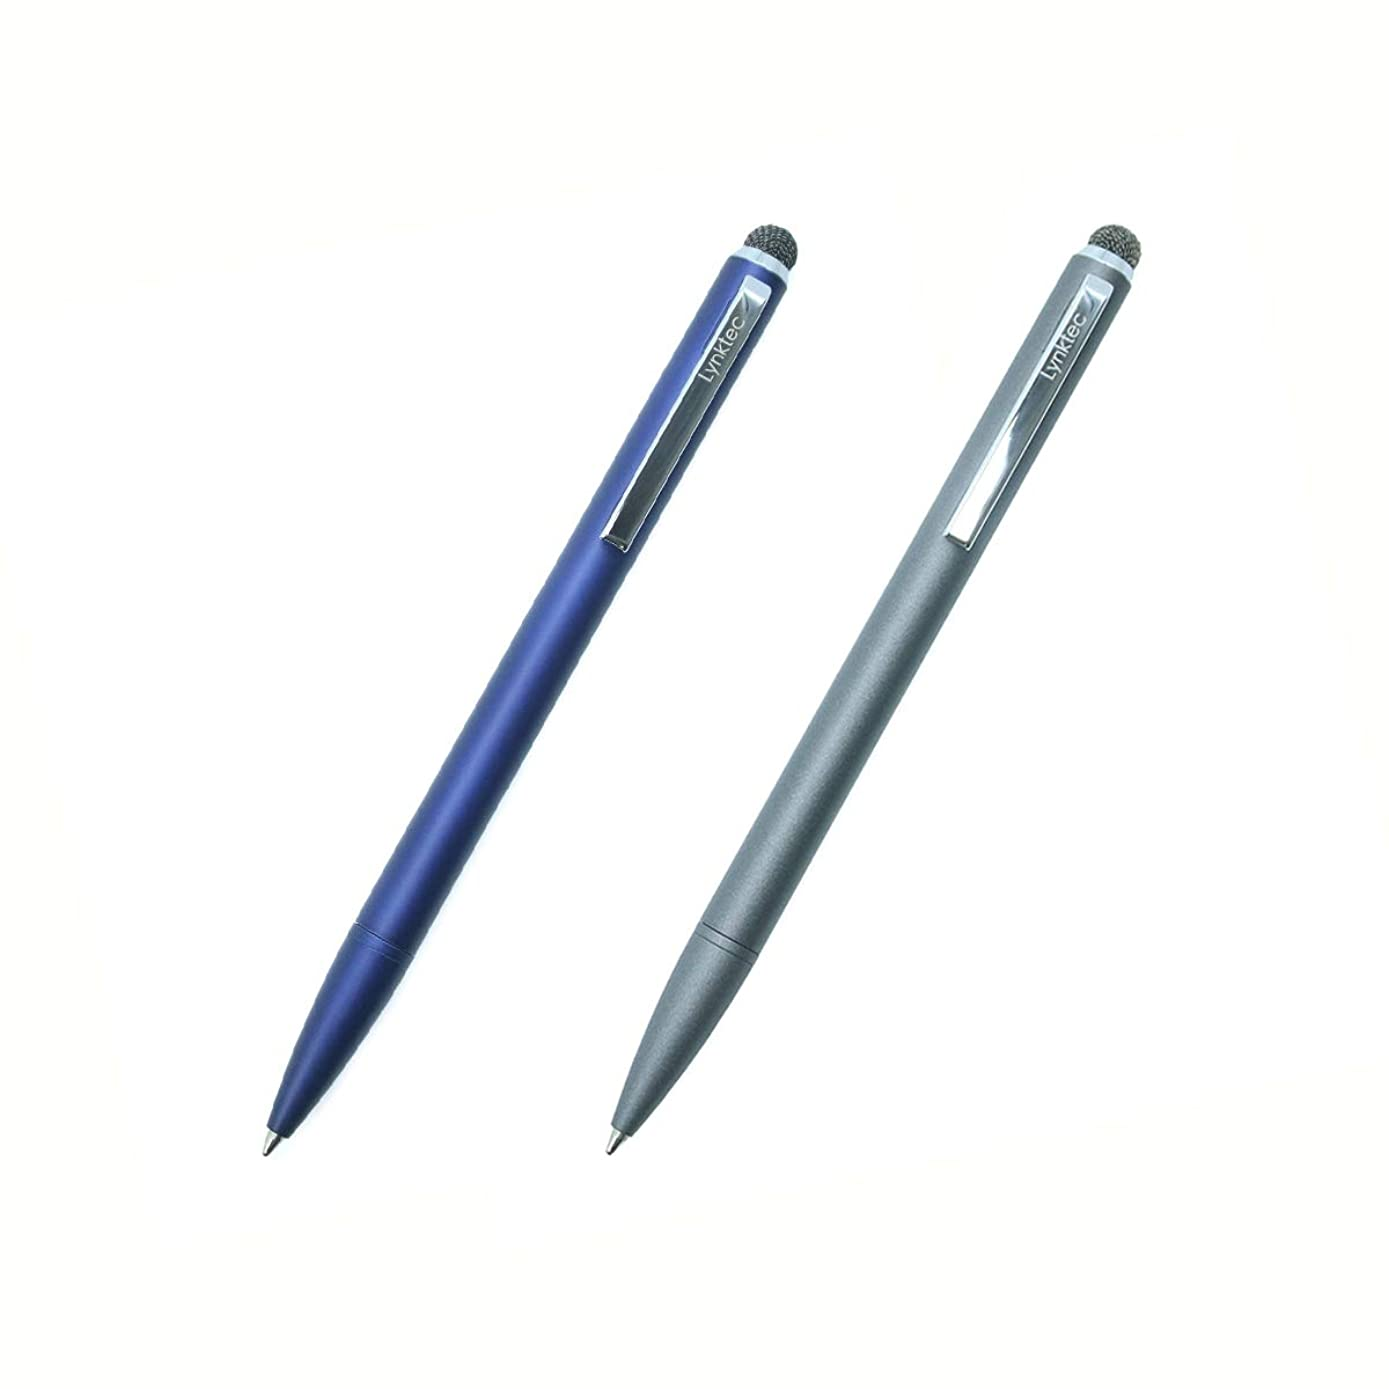 2-Pack TruGlide Duo Stylus Pen with Fiber Mesh Tip and Ballpoint Pen for iPad, iPhone, Tablet, Smartphone, and Touchscreen Devices (Blue, Gray)